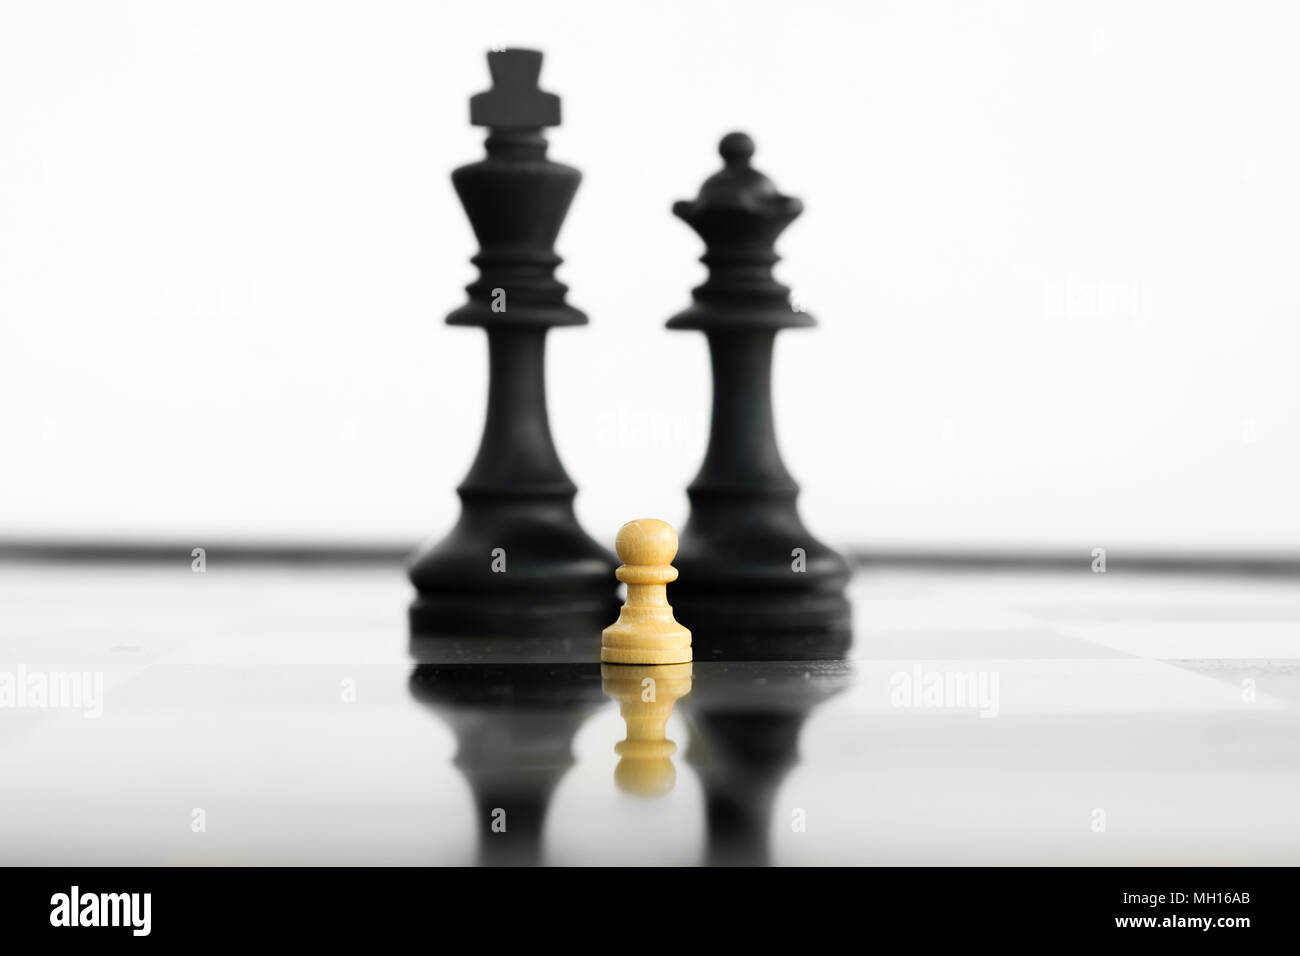 White peon standing in front of a defeated king and queen black chess army before confrontation